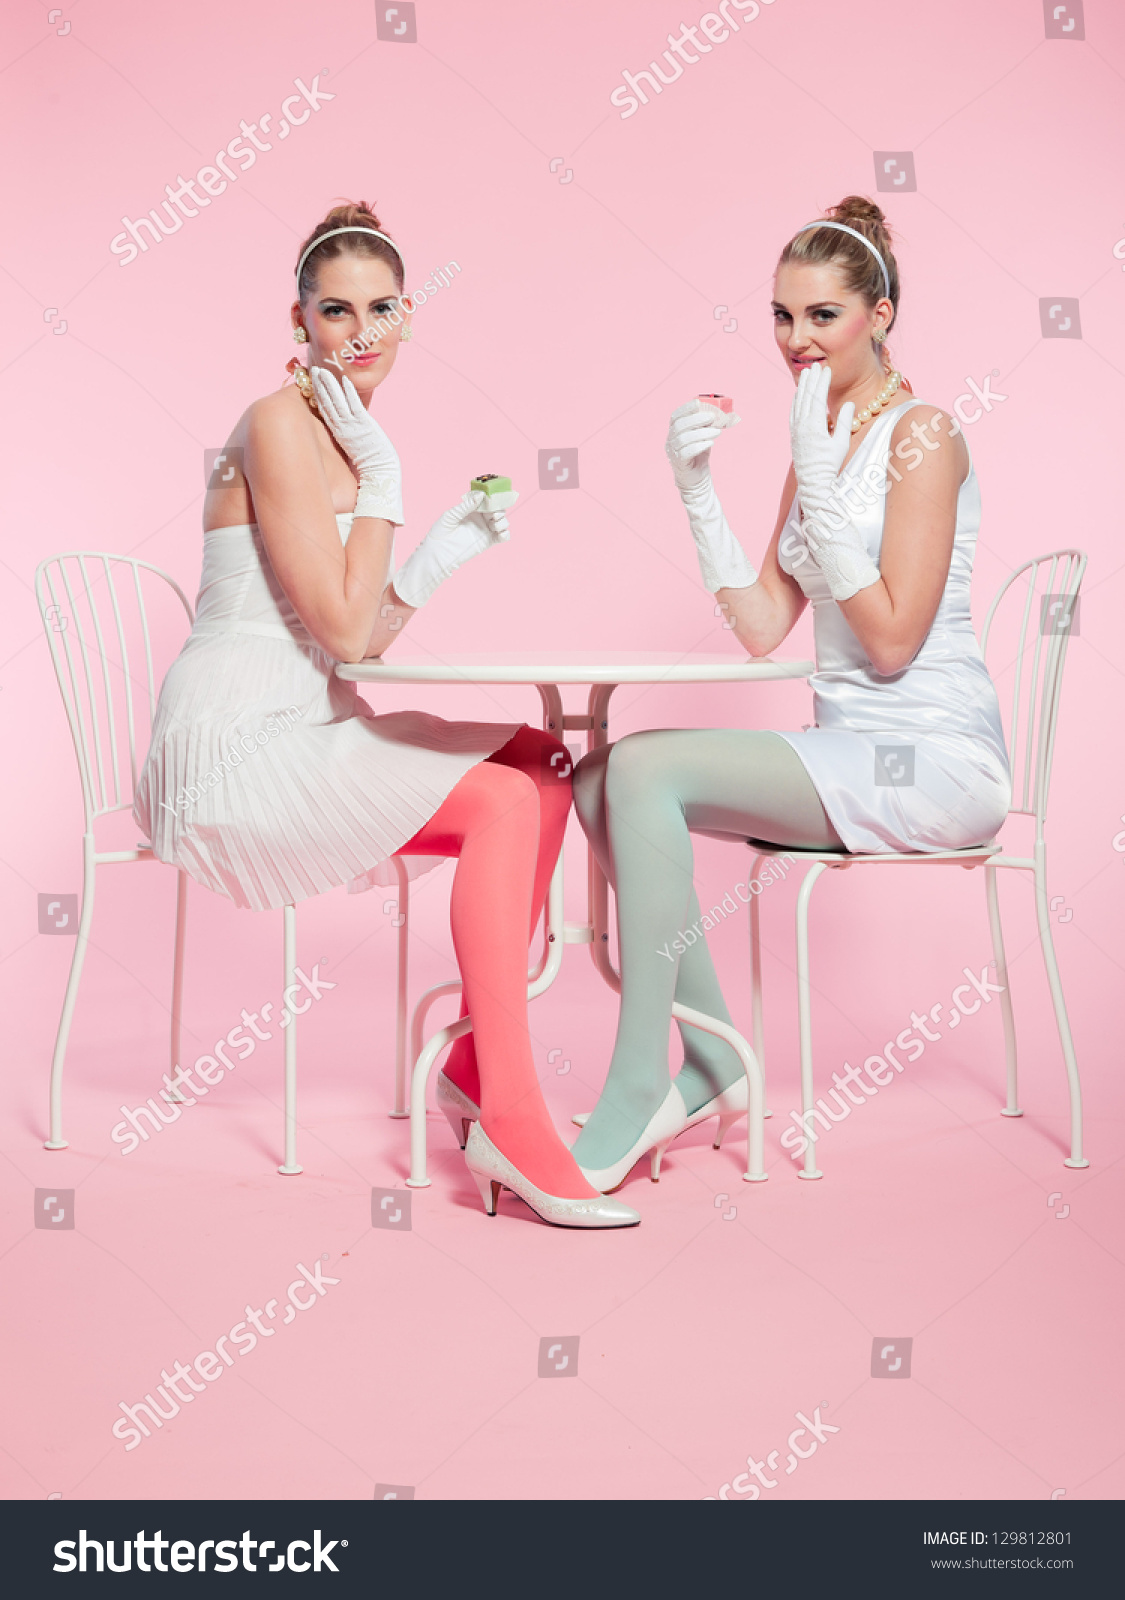 Congratulate, seems Nude two girls and a cup